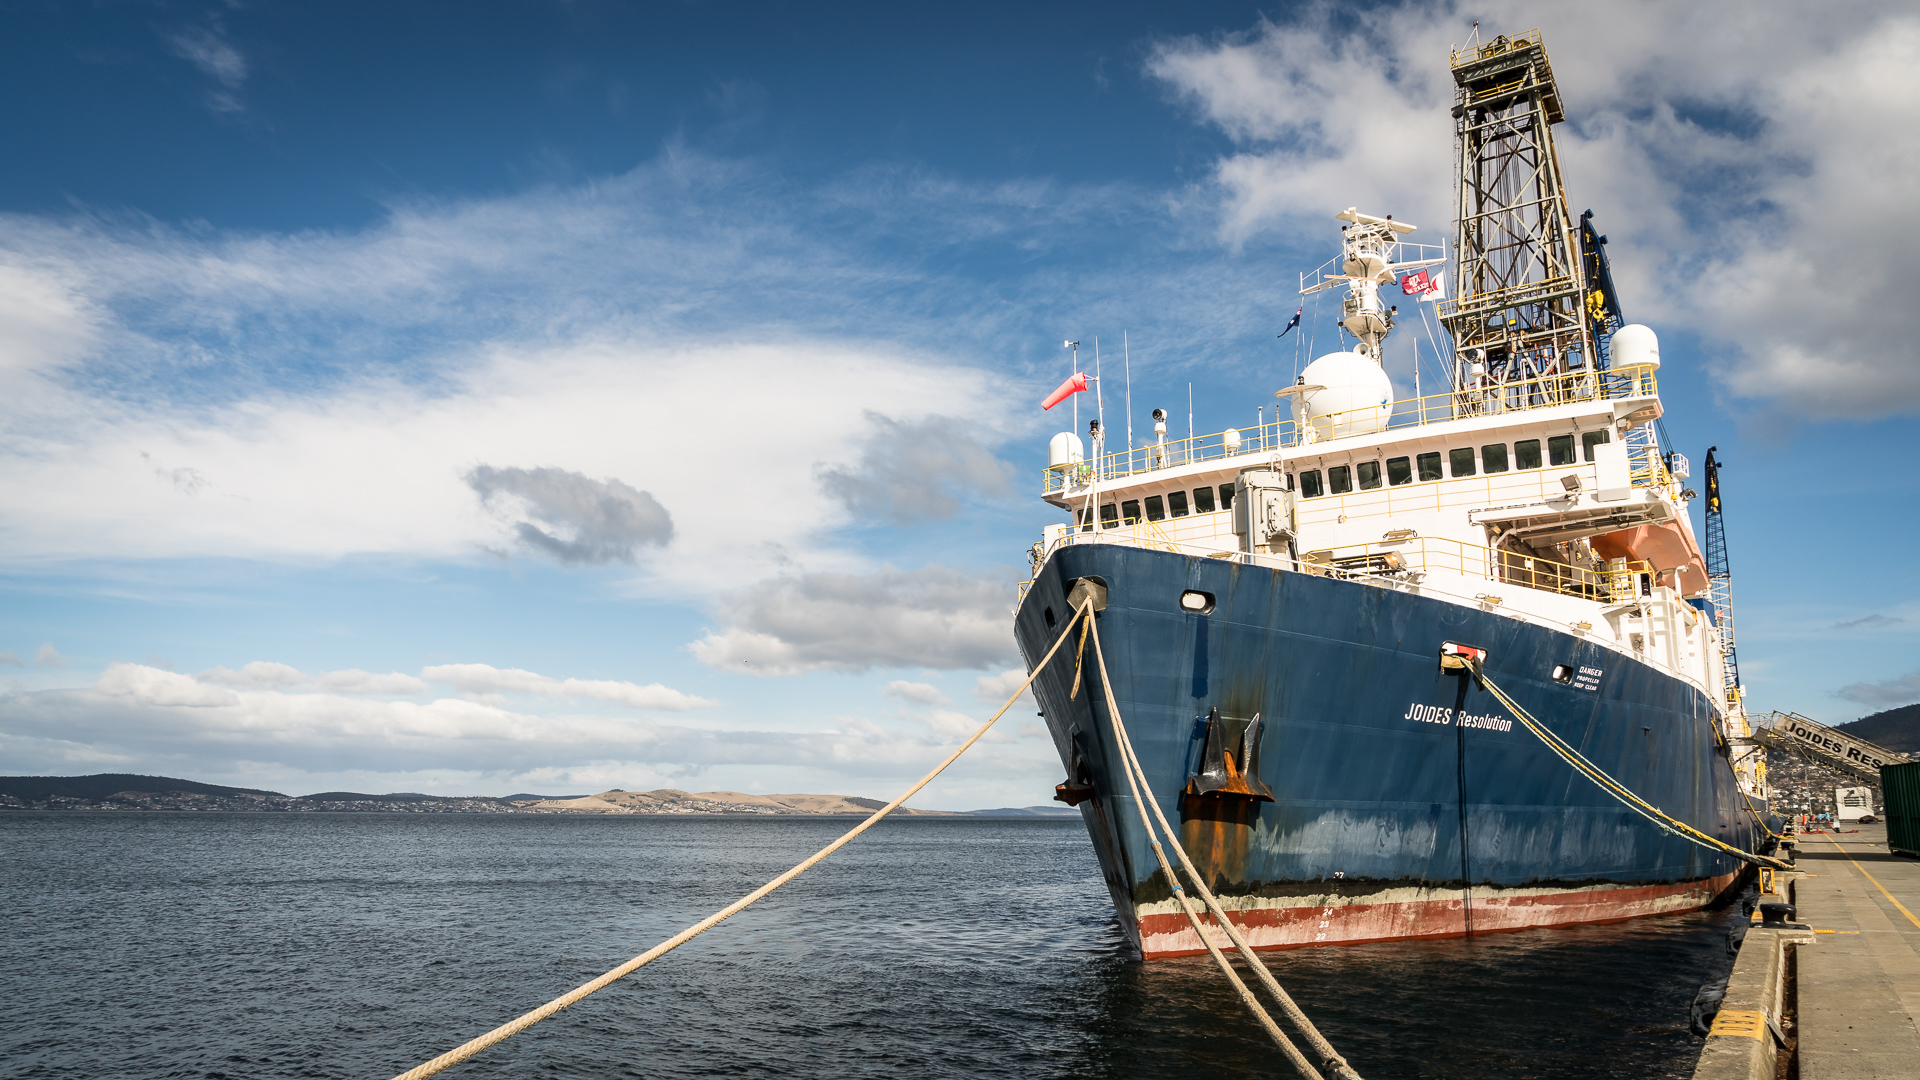 The JOIDES Resolution in port in Hobart, Australia. The boat only goes into port every 2 months to re-supply and start a new expedition Each expedition lasts two months and has a specific scientific aim.